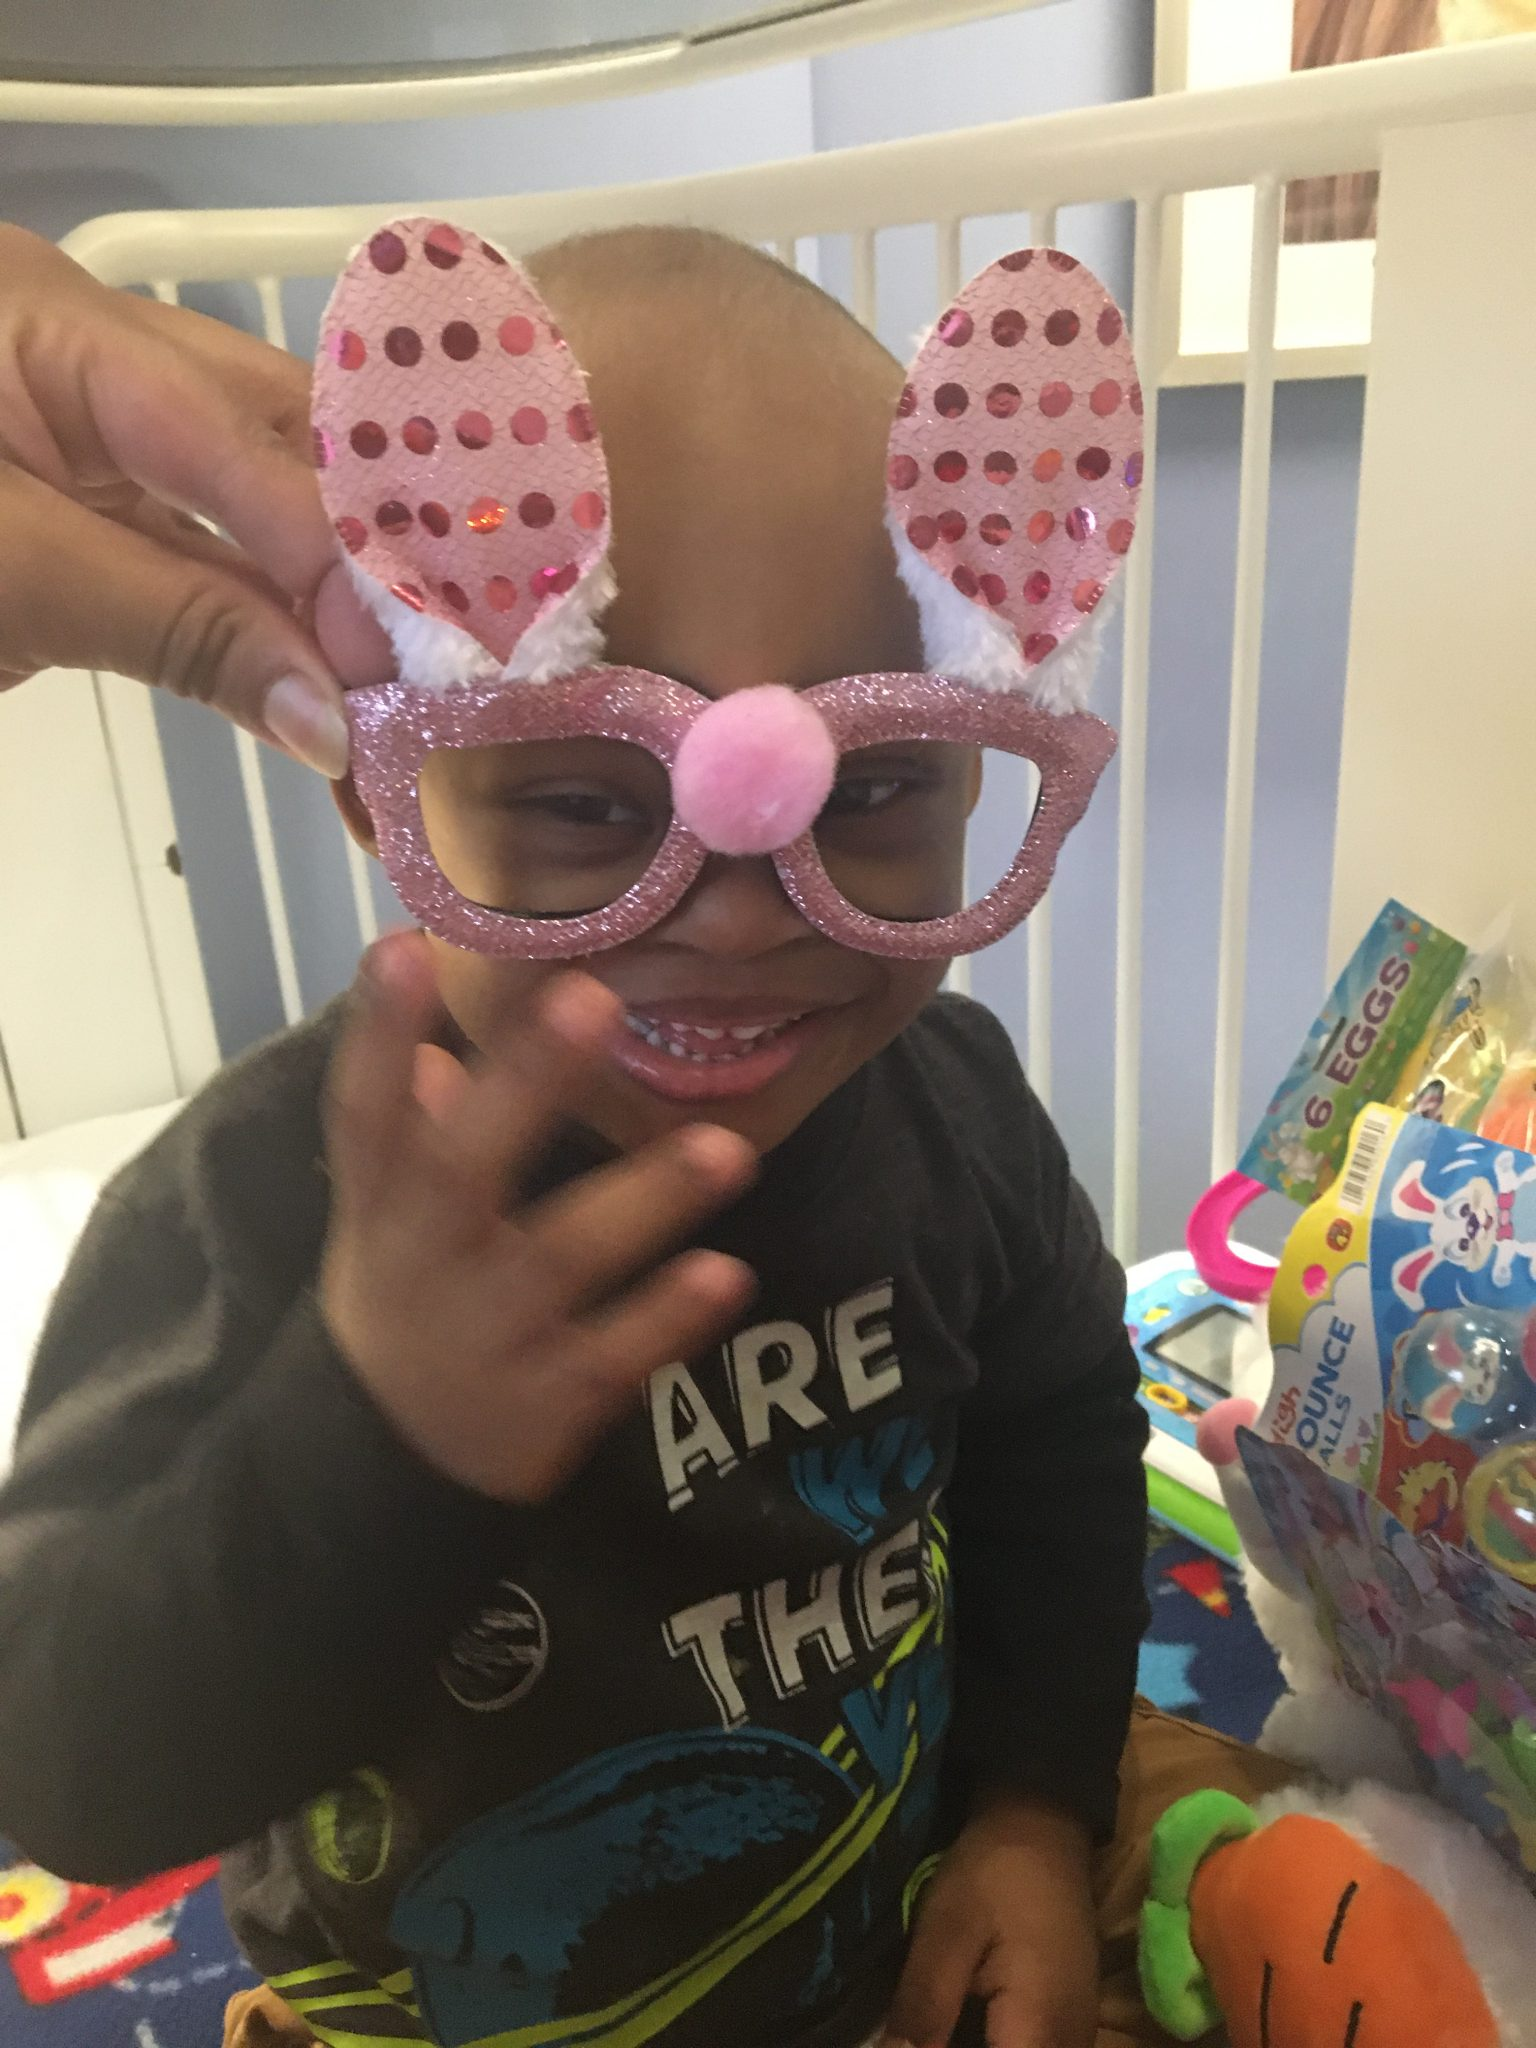 Cameron Peete with Easter glasses